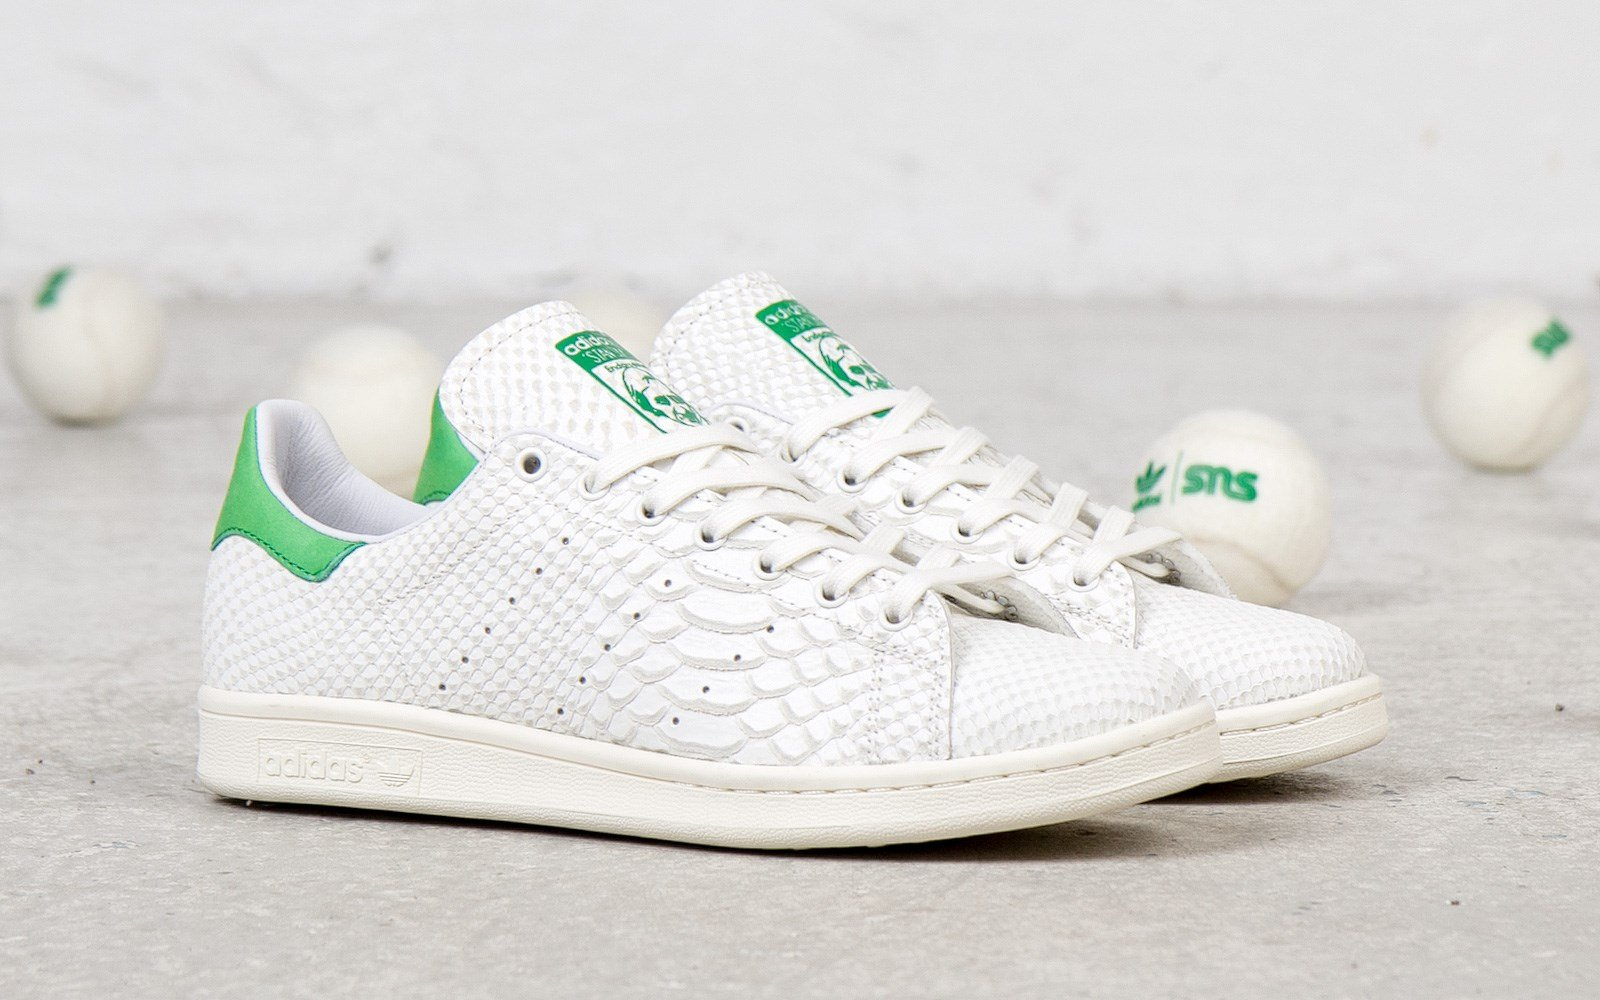 outlet on sale new arrivals new products Release Reminder: adidas Originals Consortium Stan Smith ...